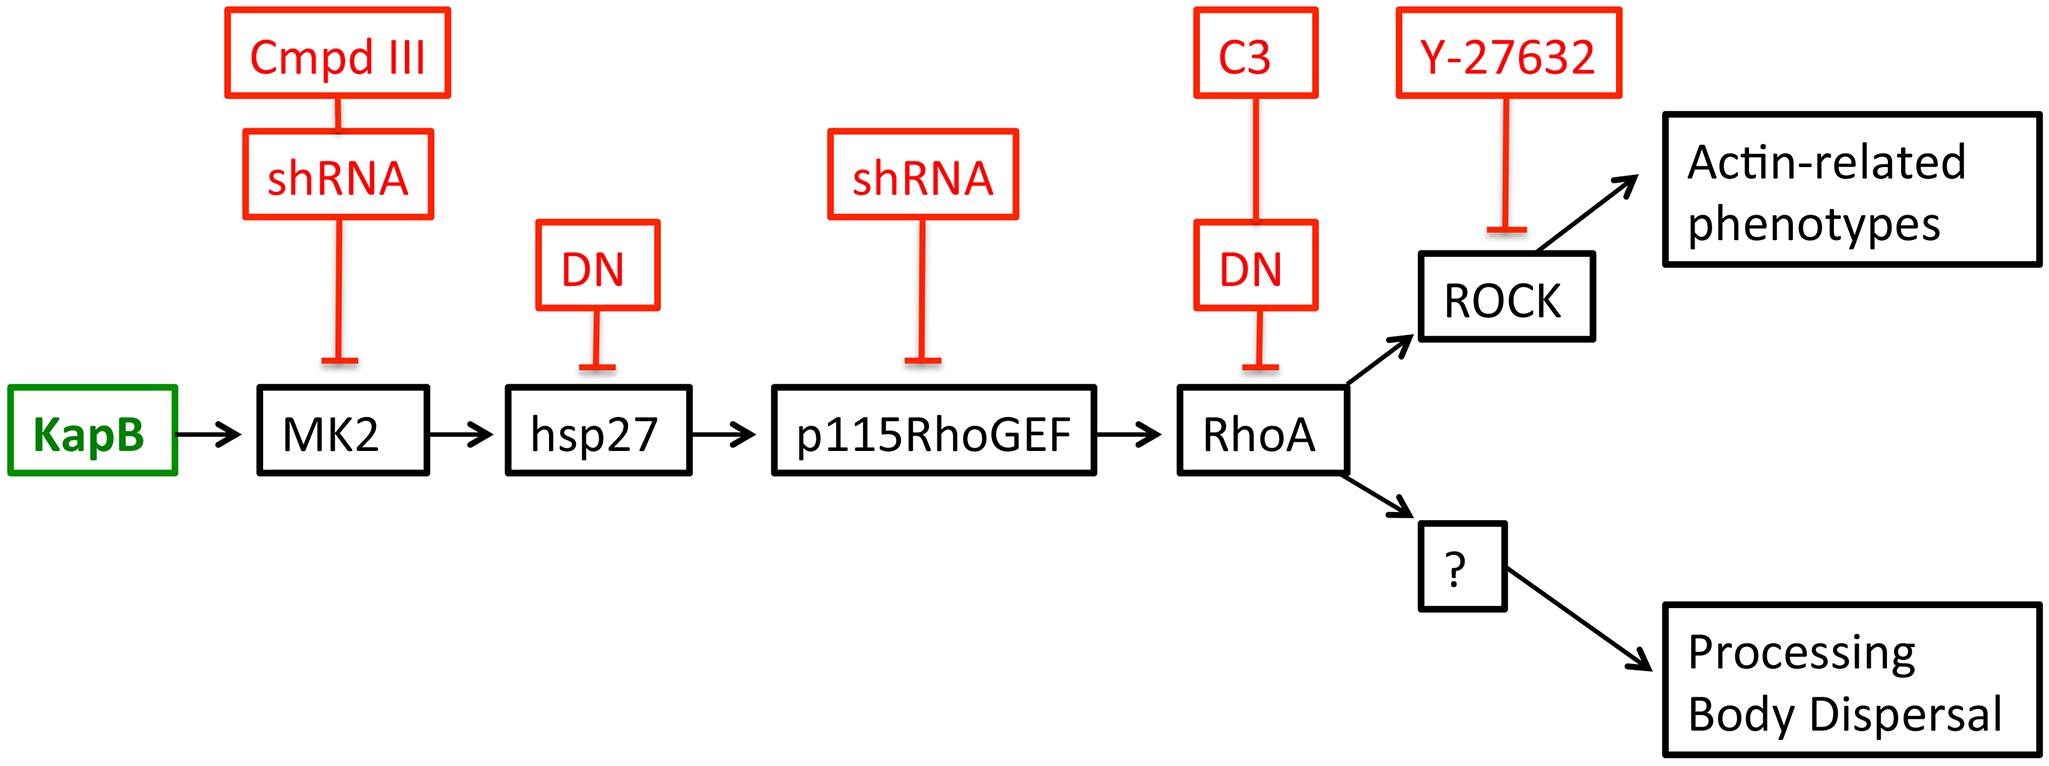 KapB activation of MK2 can lead to RhoA through intermediates hsp27 and p115RhoGEF.